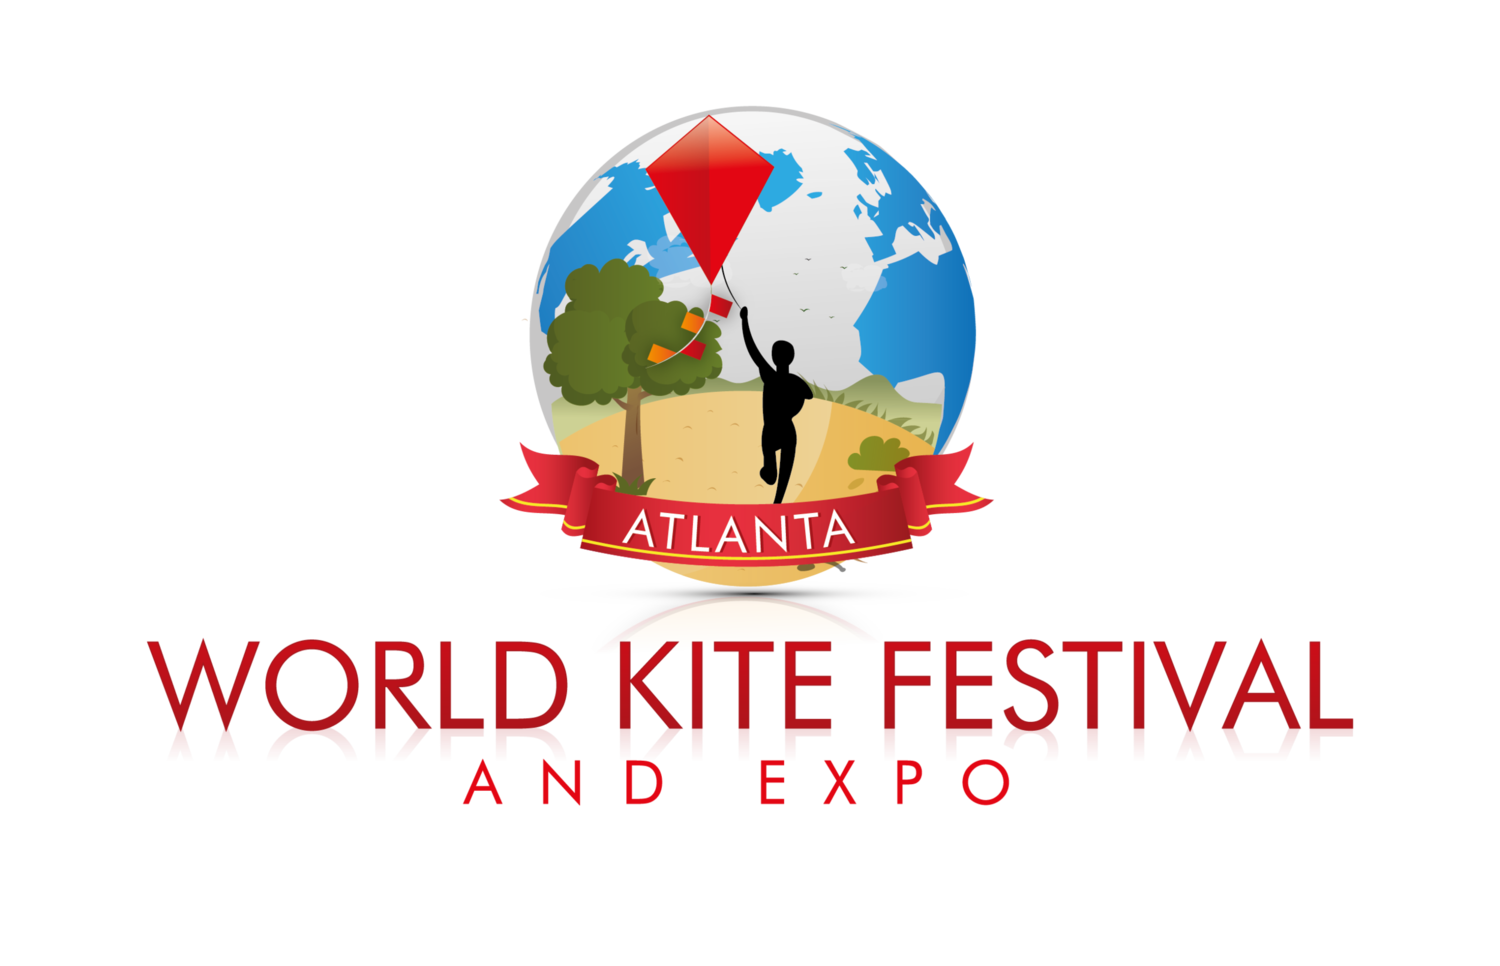 The Atlanta World Kite Festival